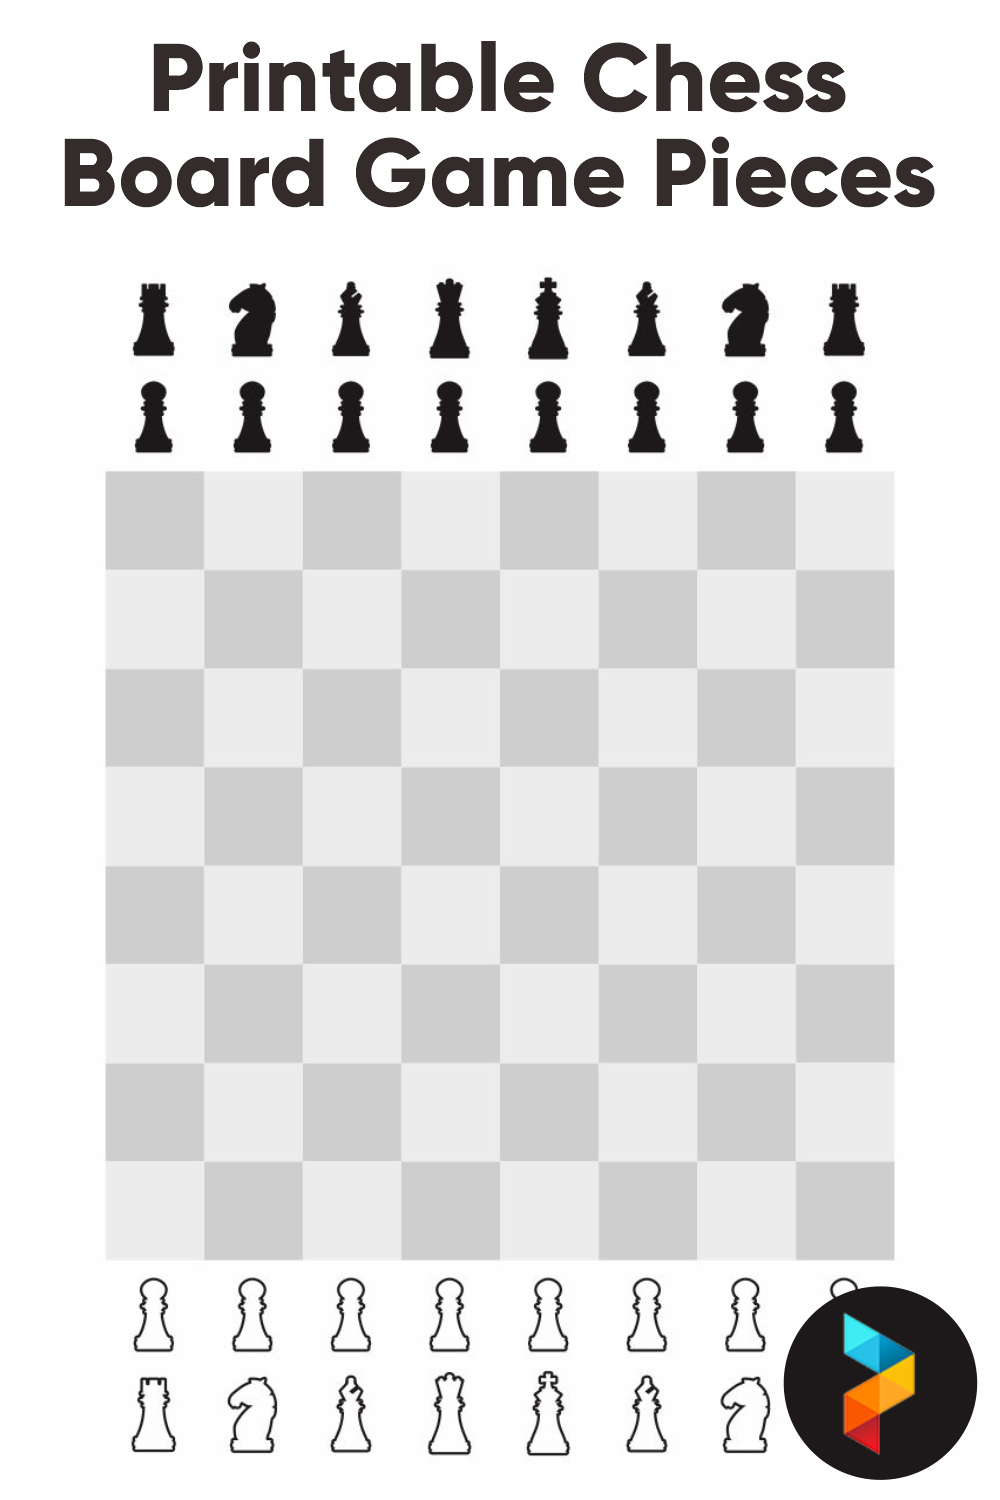 Printable Chess Board Game Pieces